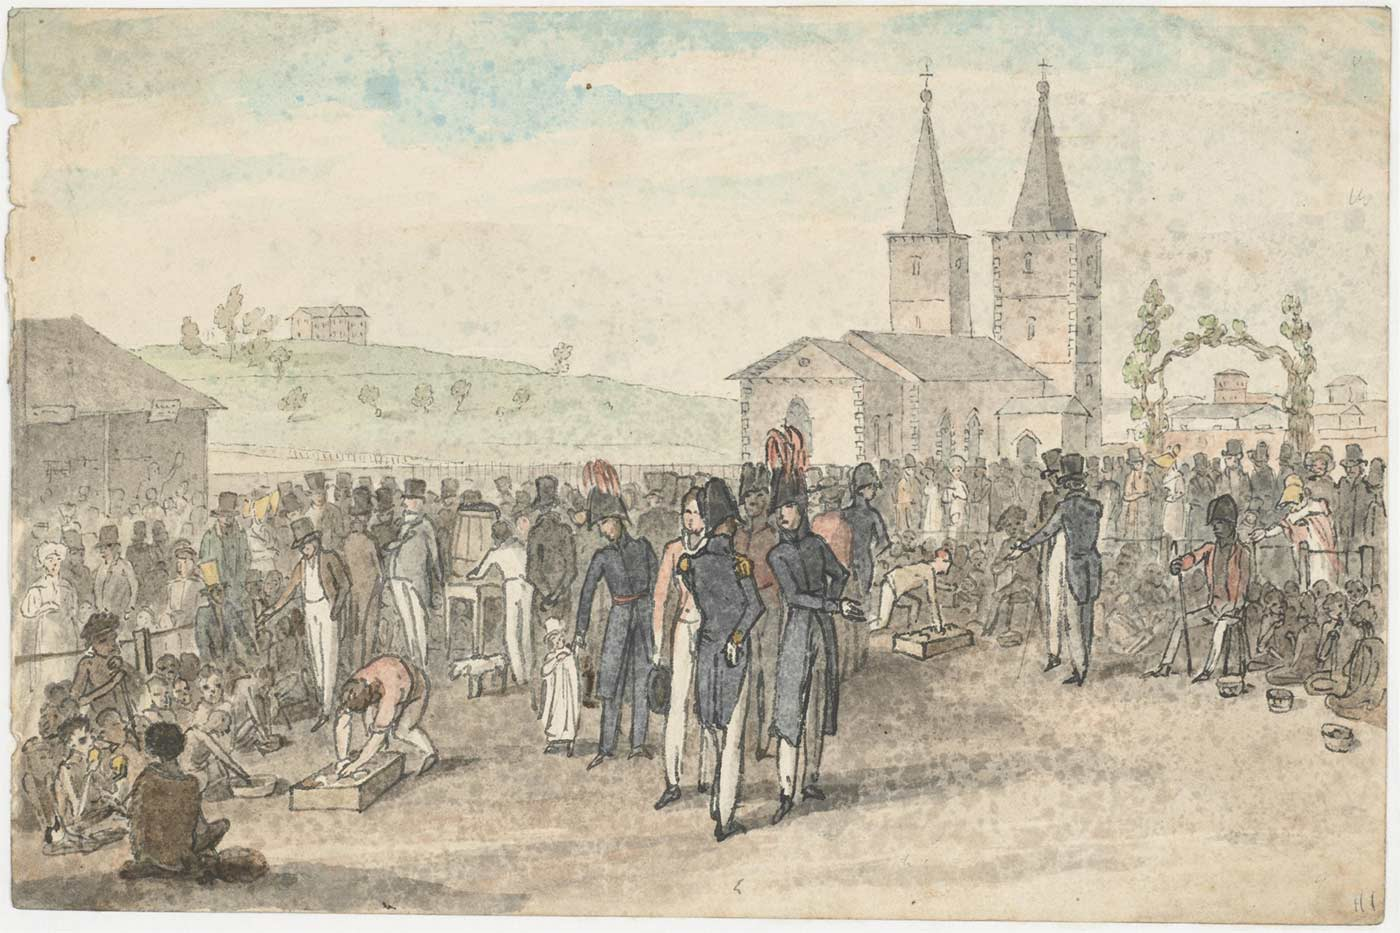 Watercolour painting showing a crowd of people in nineteenth century clothing standing in a town setting with a cathedral in the background.